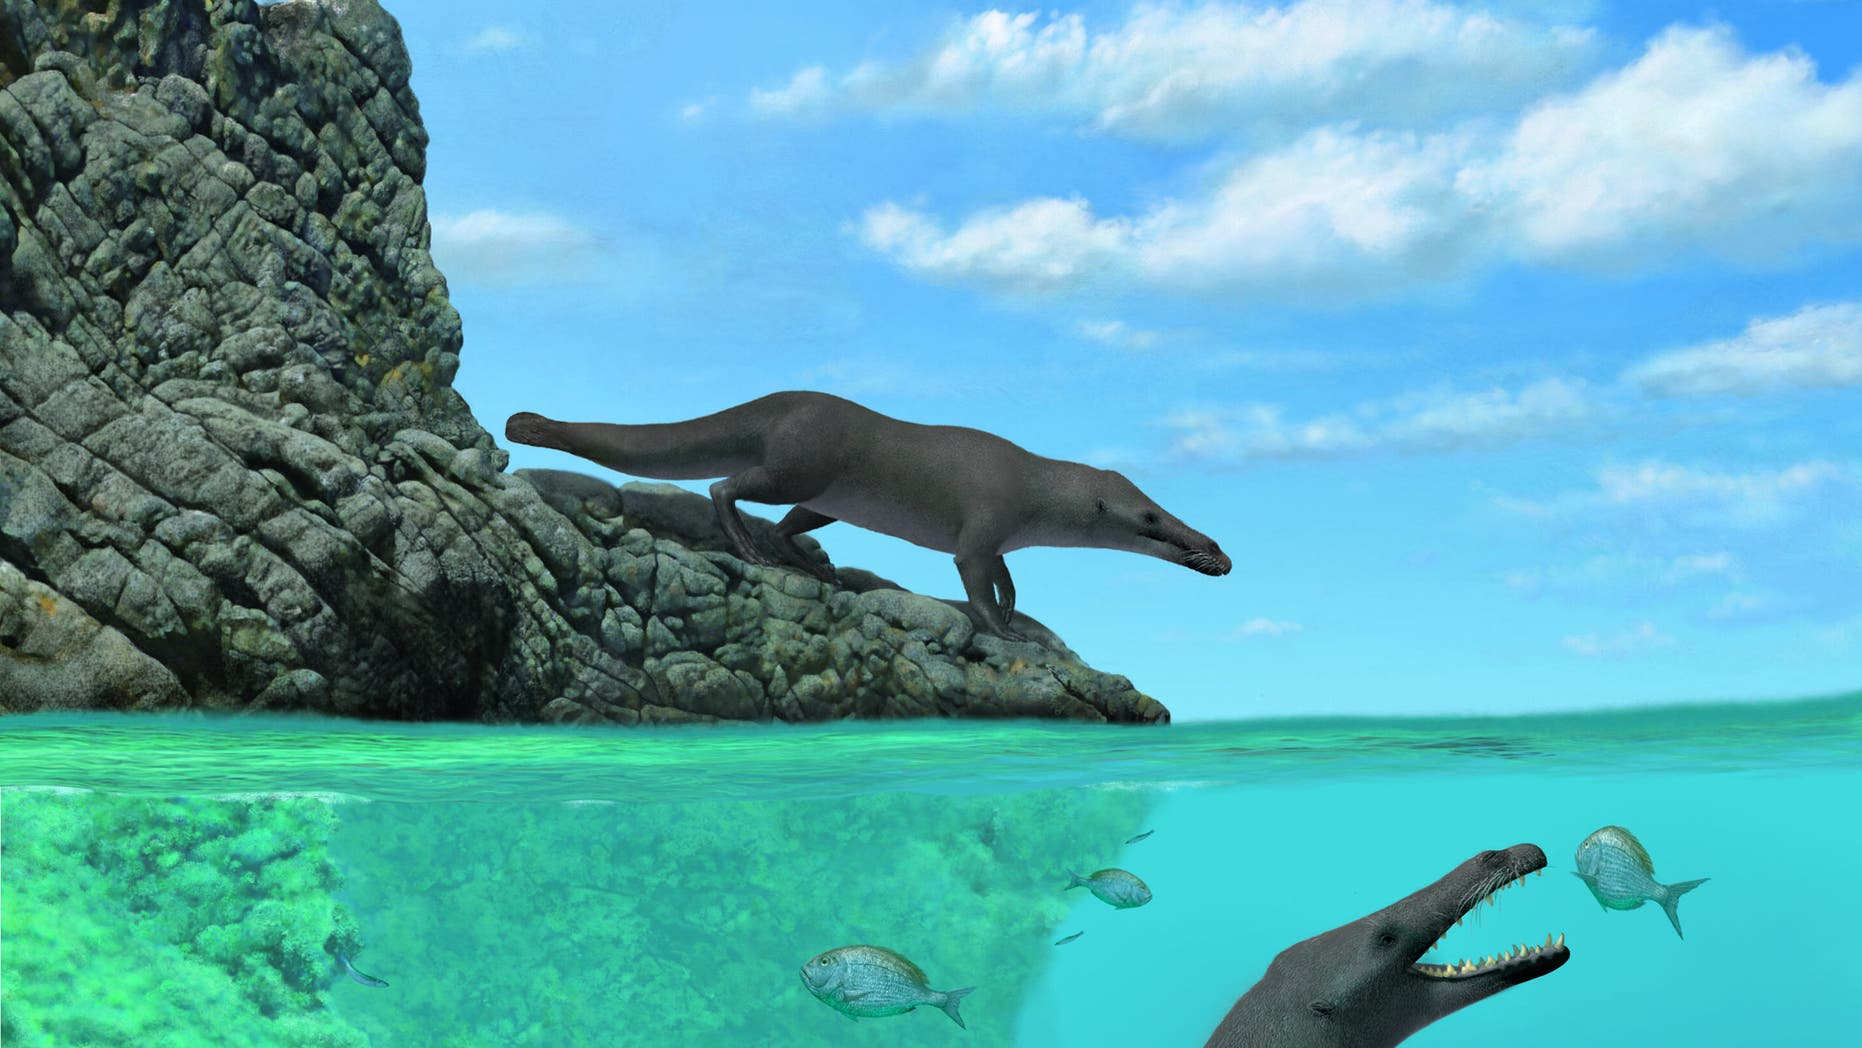 This illustration shows an artistic reconstruction of two individuals of Peregocetus, one standing along the rocky shore of nowadays Peru and the other preying upon sparid fish. The presence of a tail fluke remains hypothetical. Credit: A. Gennari